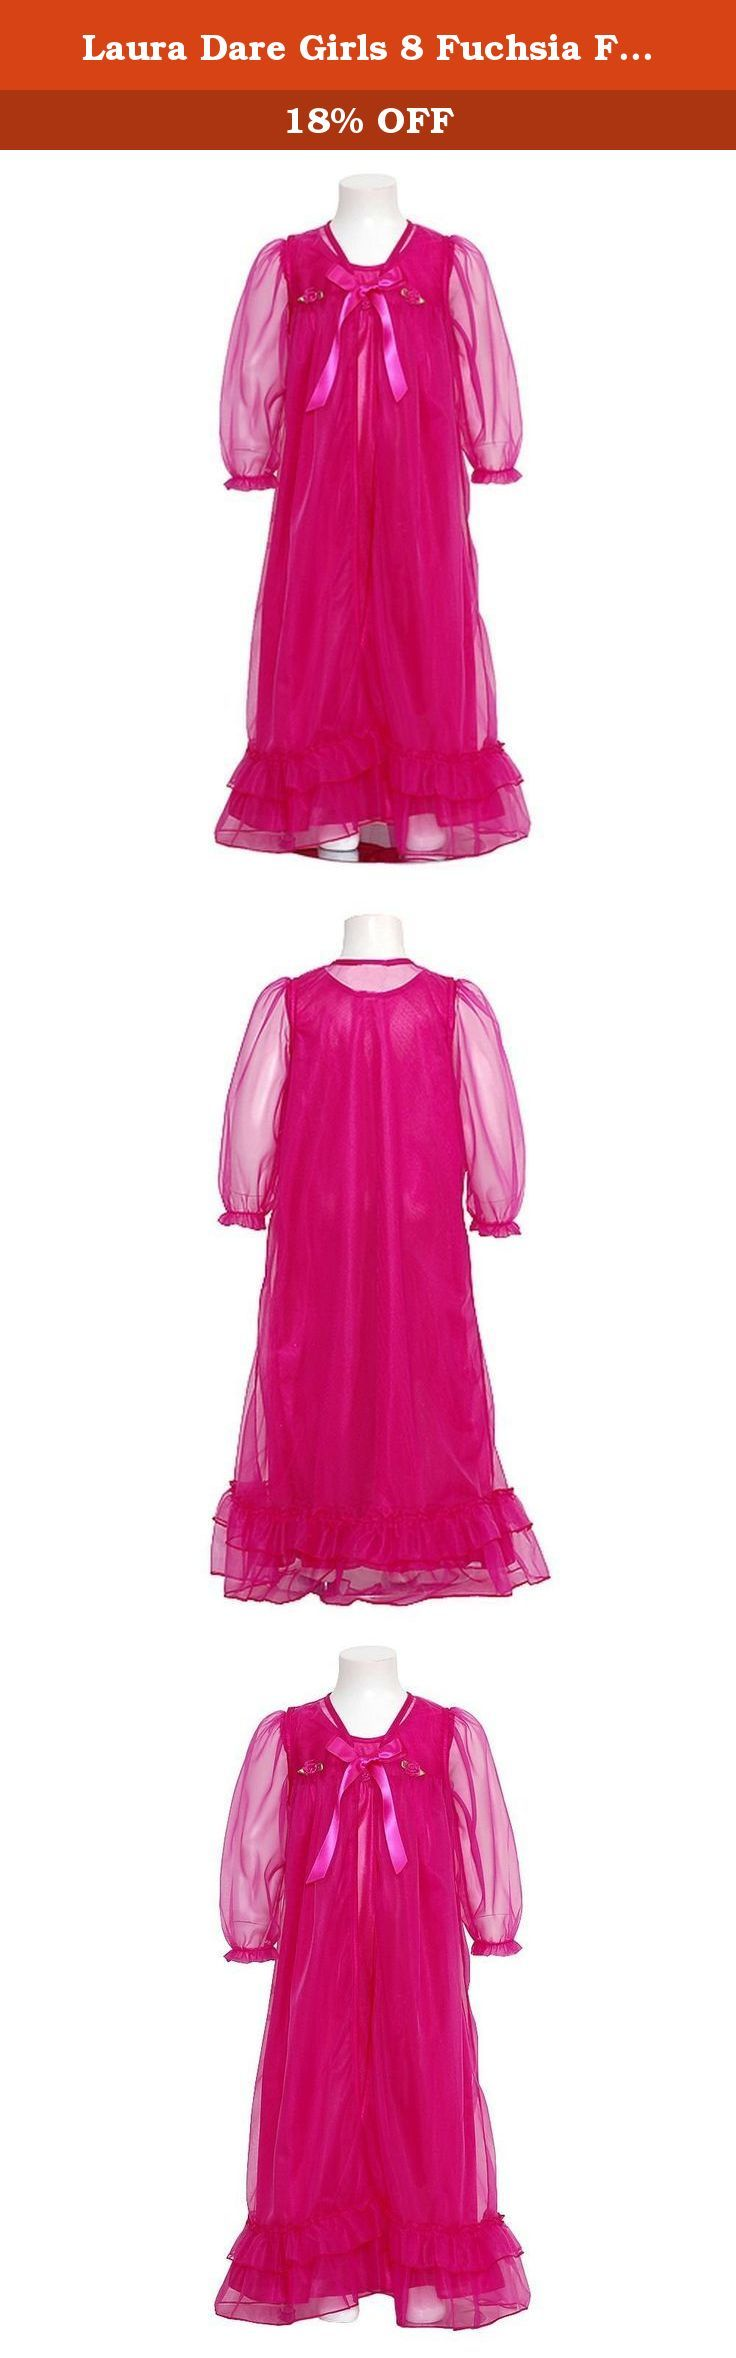 Laura Dare Girls 8 Fuchsia Floral Peignoir 2pc Robe Nightgown. An adorable Peignoir set for your little girl from Laura Dare. She'll feel so grown up in this 2pc sheer frilly set. The sheer robe is trimmed in ruffles and ties with a soft ribbon at the neck. Soft ribbon flowers ar attached along the neckline. Completing this set is a shimmery nightgown with spaghetti straps. Great for her first sleepover or any special girls time.